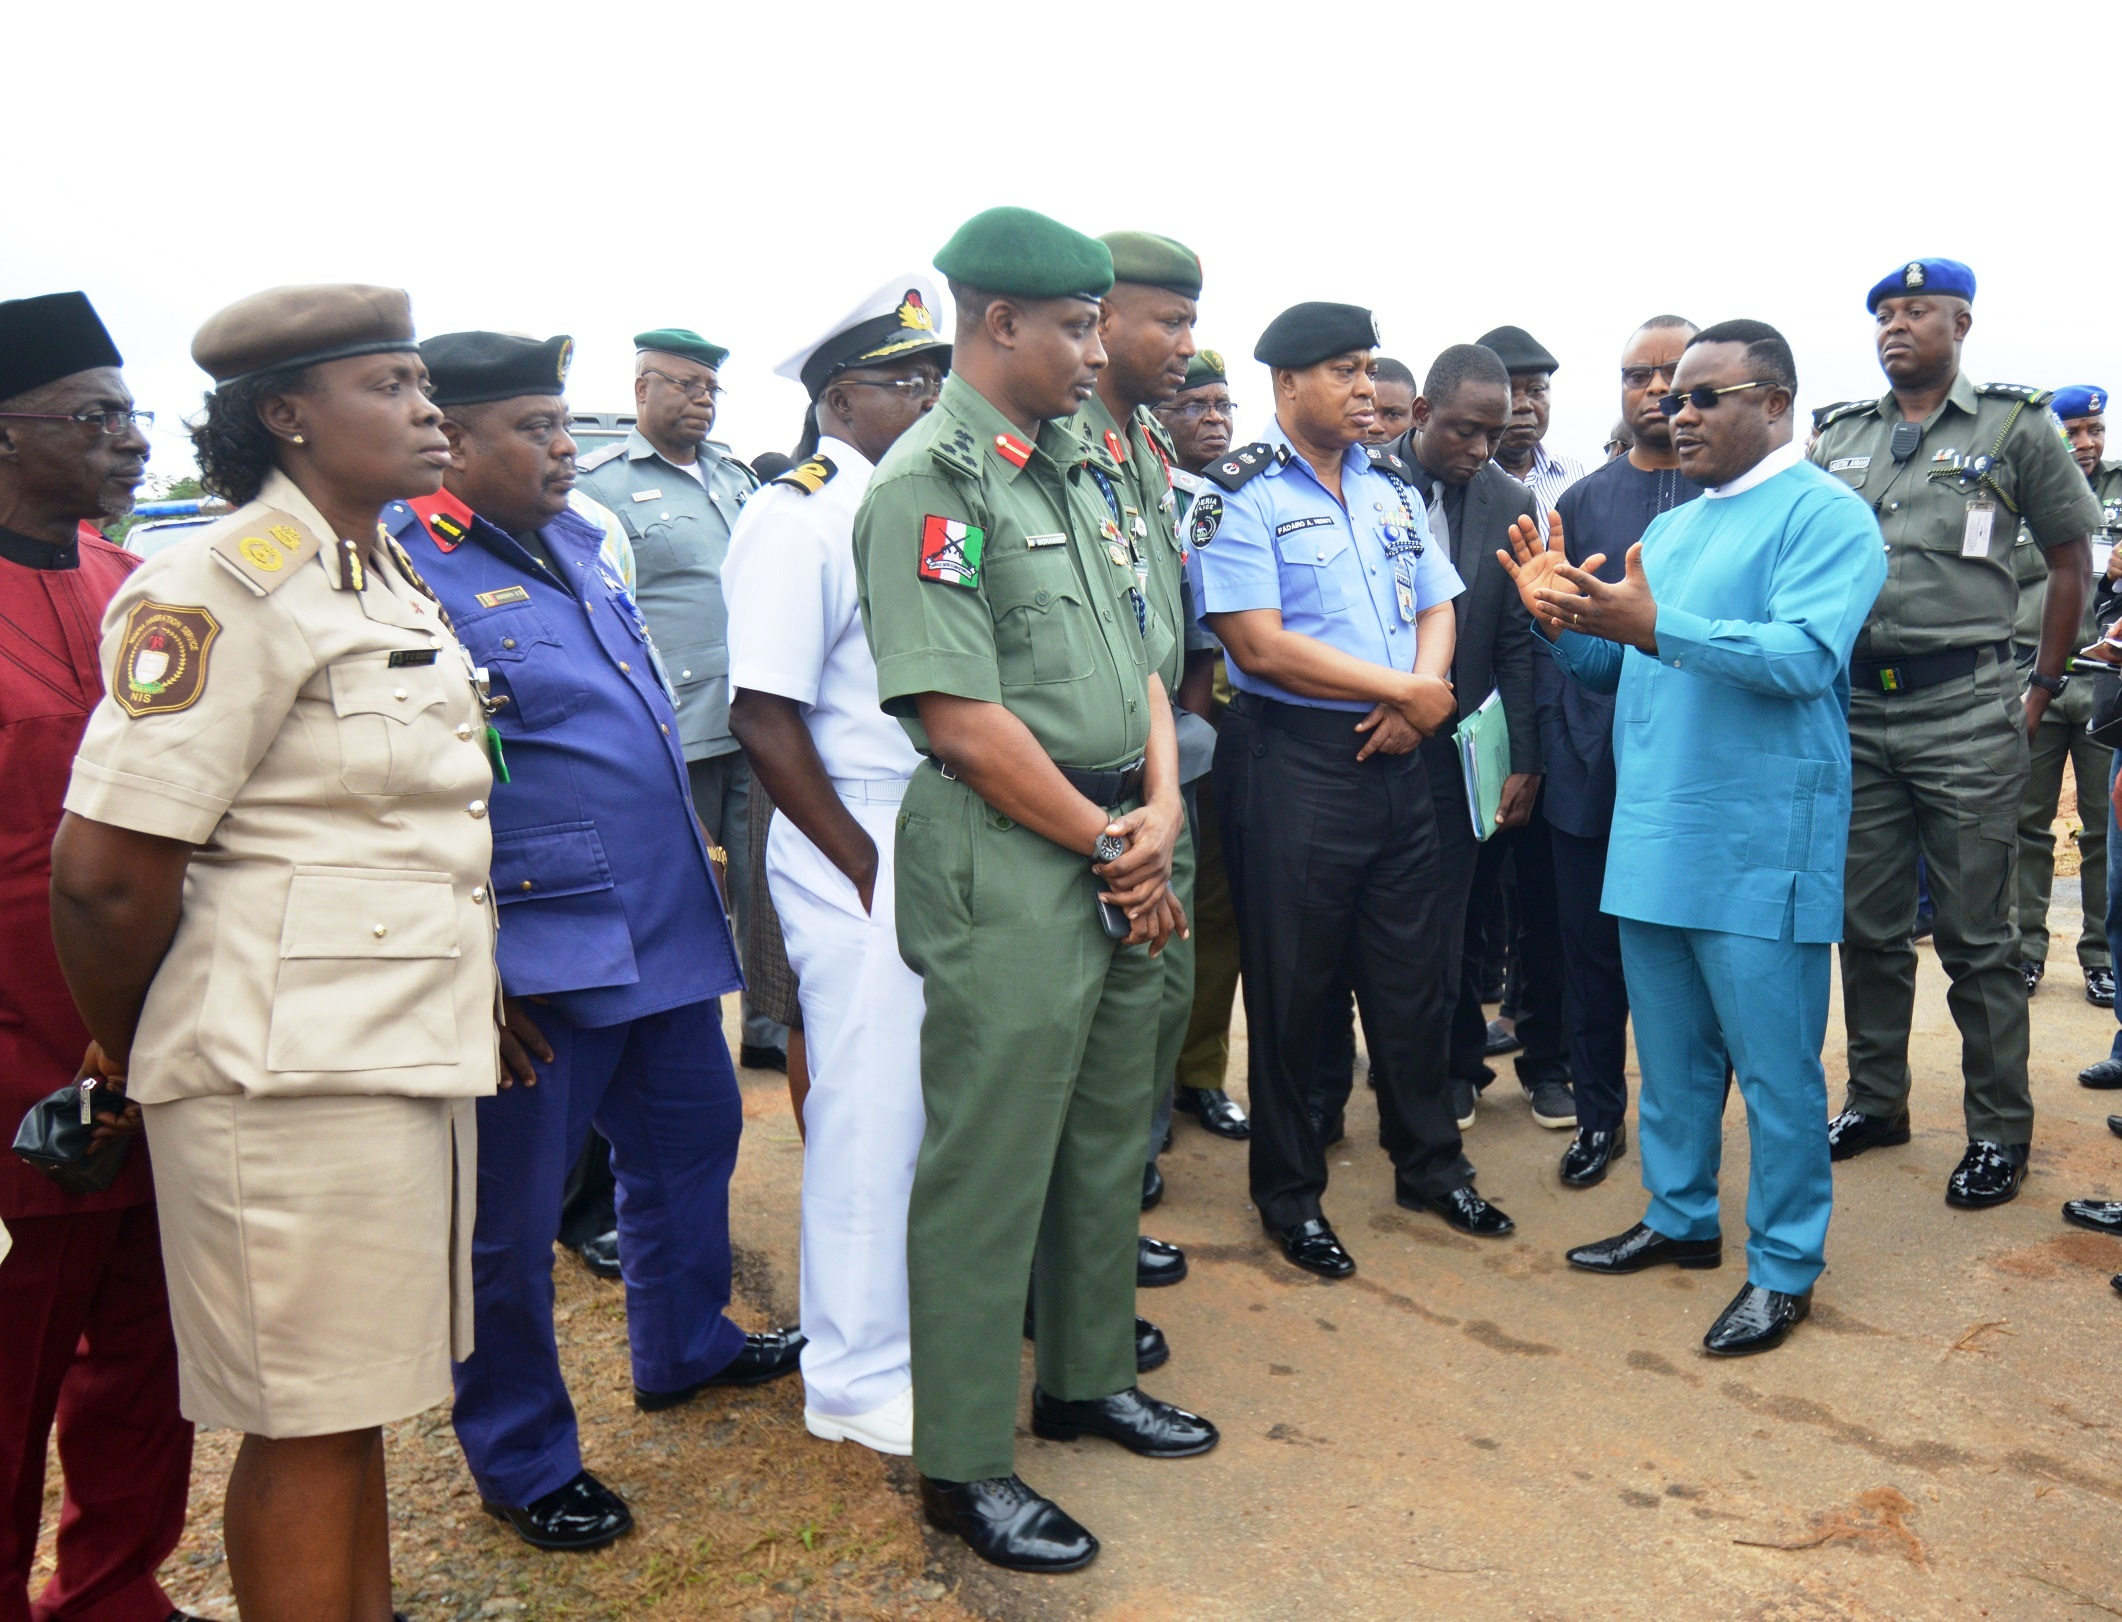 Cross River State Governor, Senator Ben Ayade(R) with service commanders at a portion of the 240km Super Highway where work is ongoing ahead of President Buhari's visit for the ground breaking ceremony on Monday 21st September